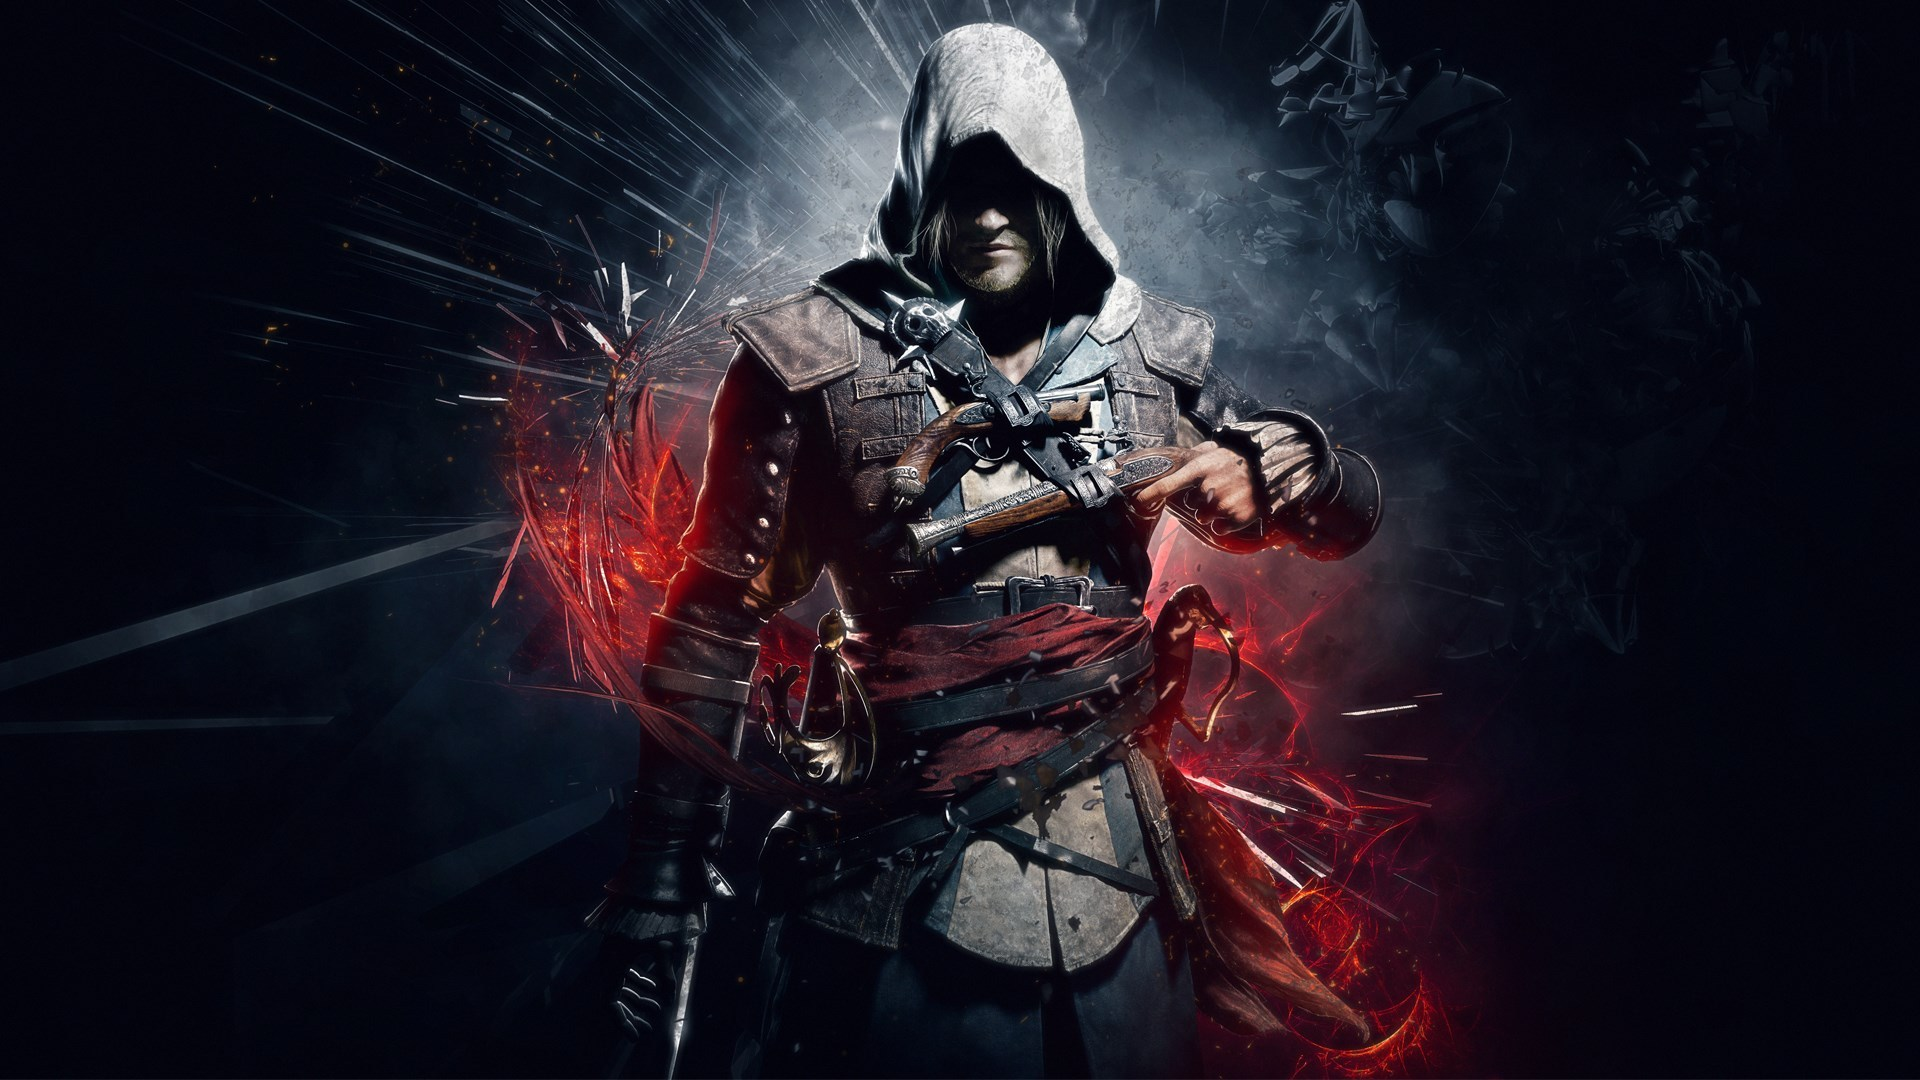 assassin-creed-wallpapers